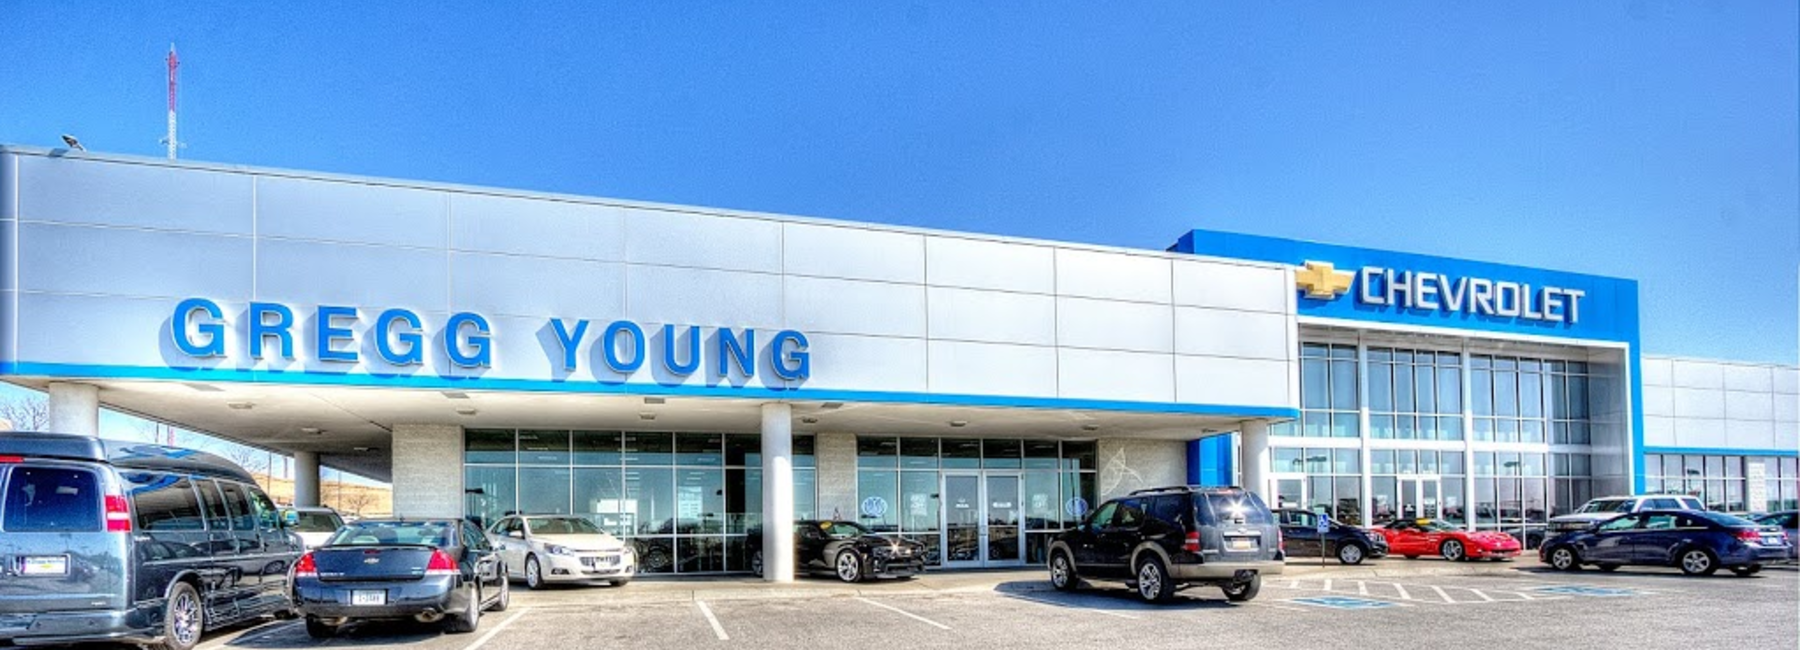 Gregg Young Dealership